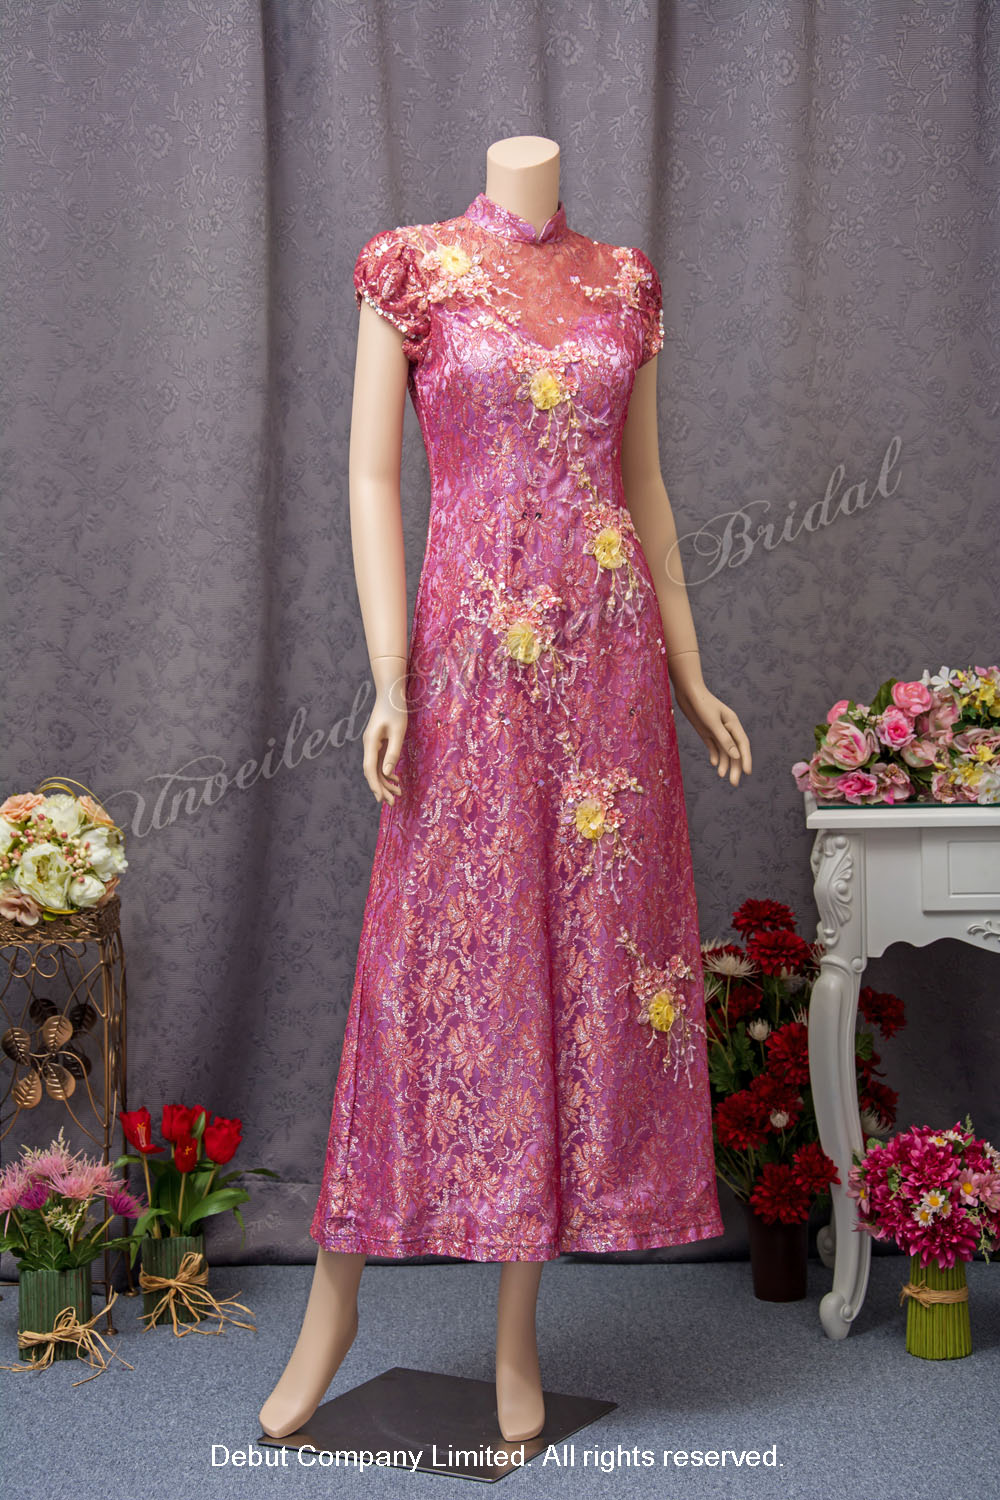 High collar, princess sleeves, A-line lace qipao embellished with ribbon flowers, beads and sequins. Colour: Magenta Purple 企領公主袖 A-line 蕾絲旗袍, 立體釘珠花飾, 粉紫色媽咪衫